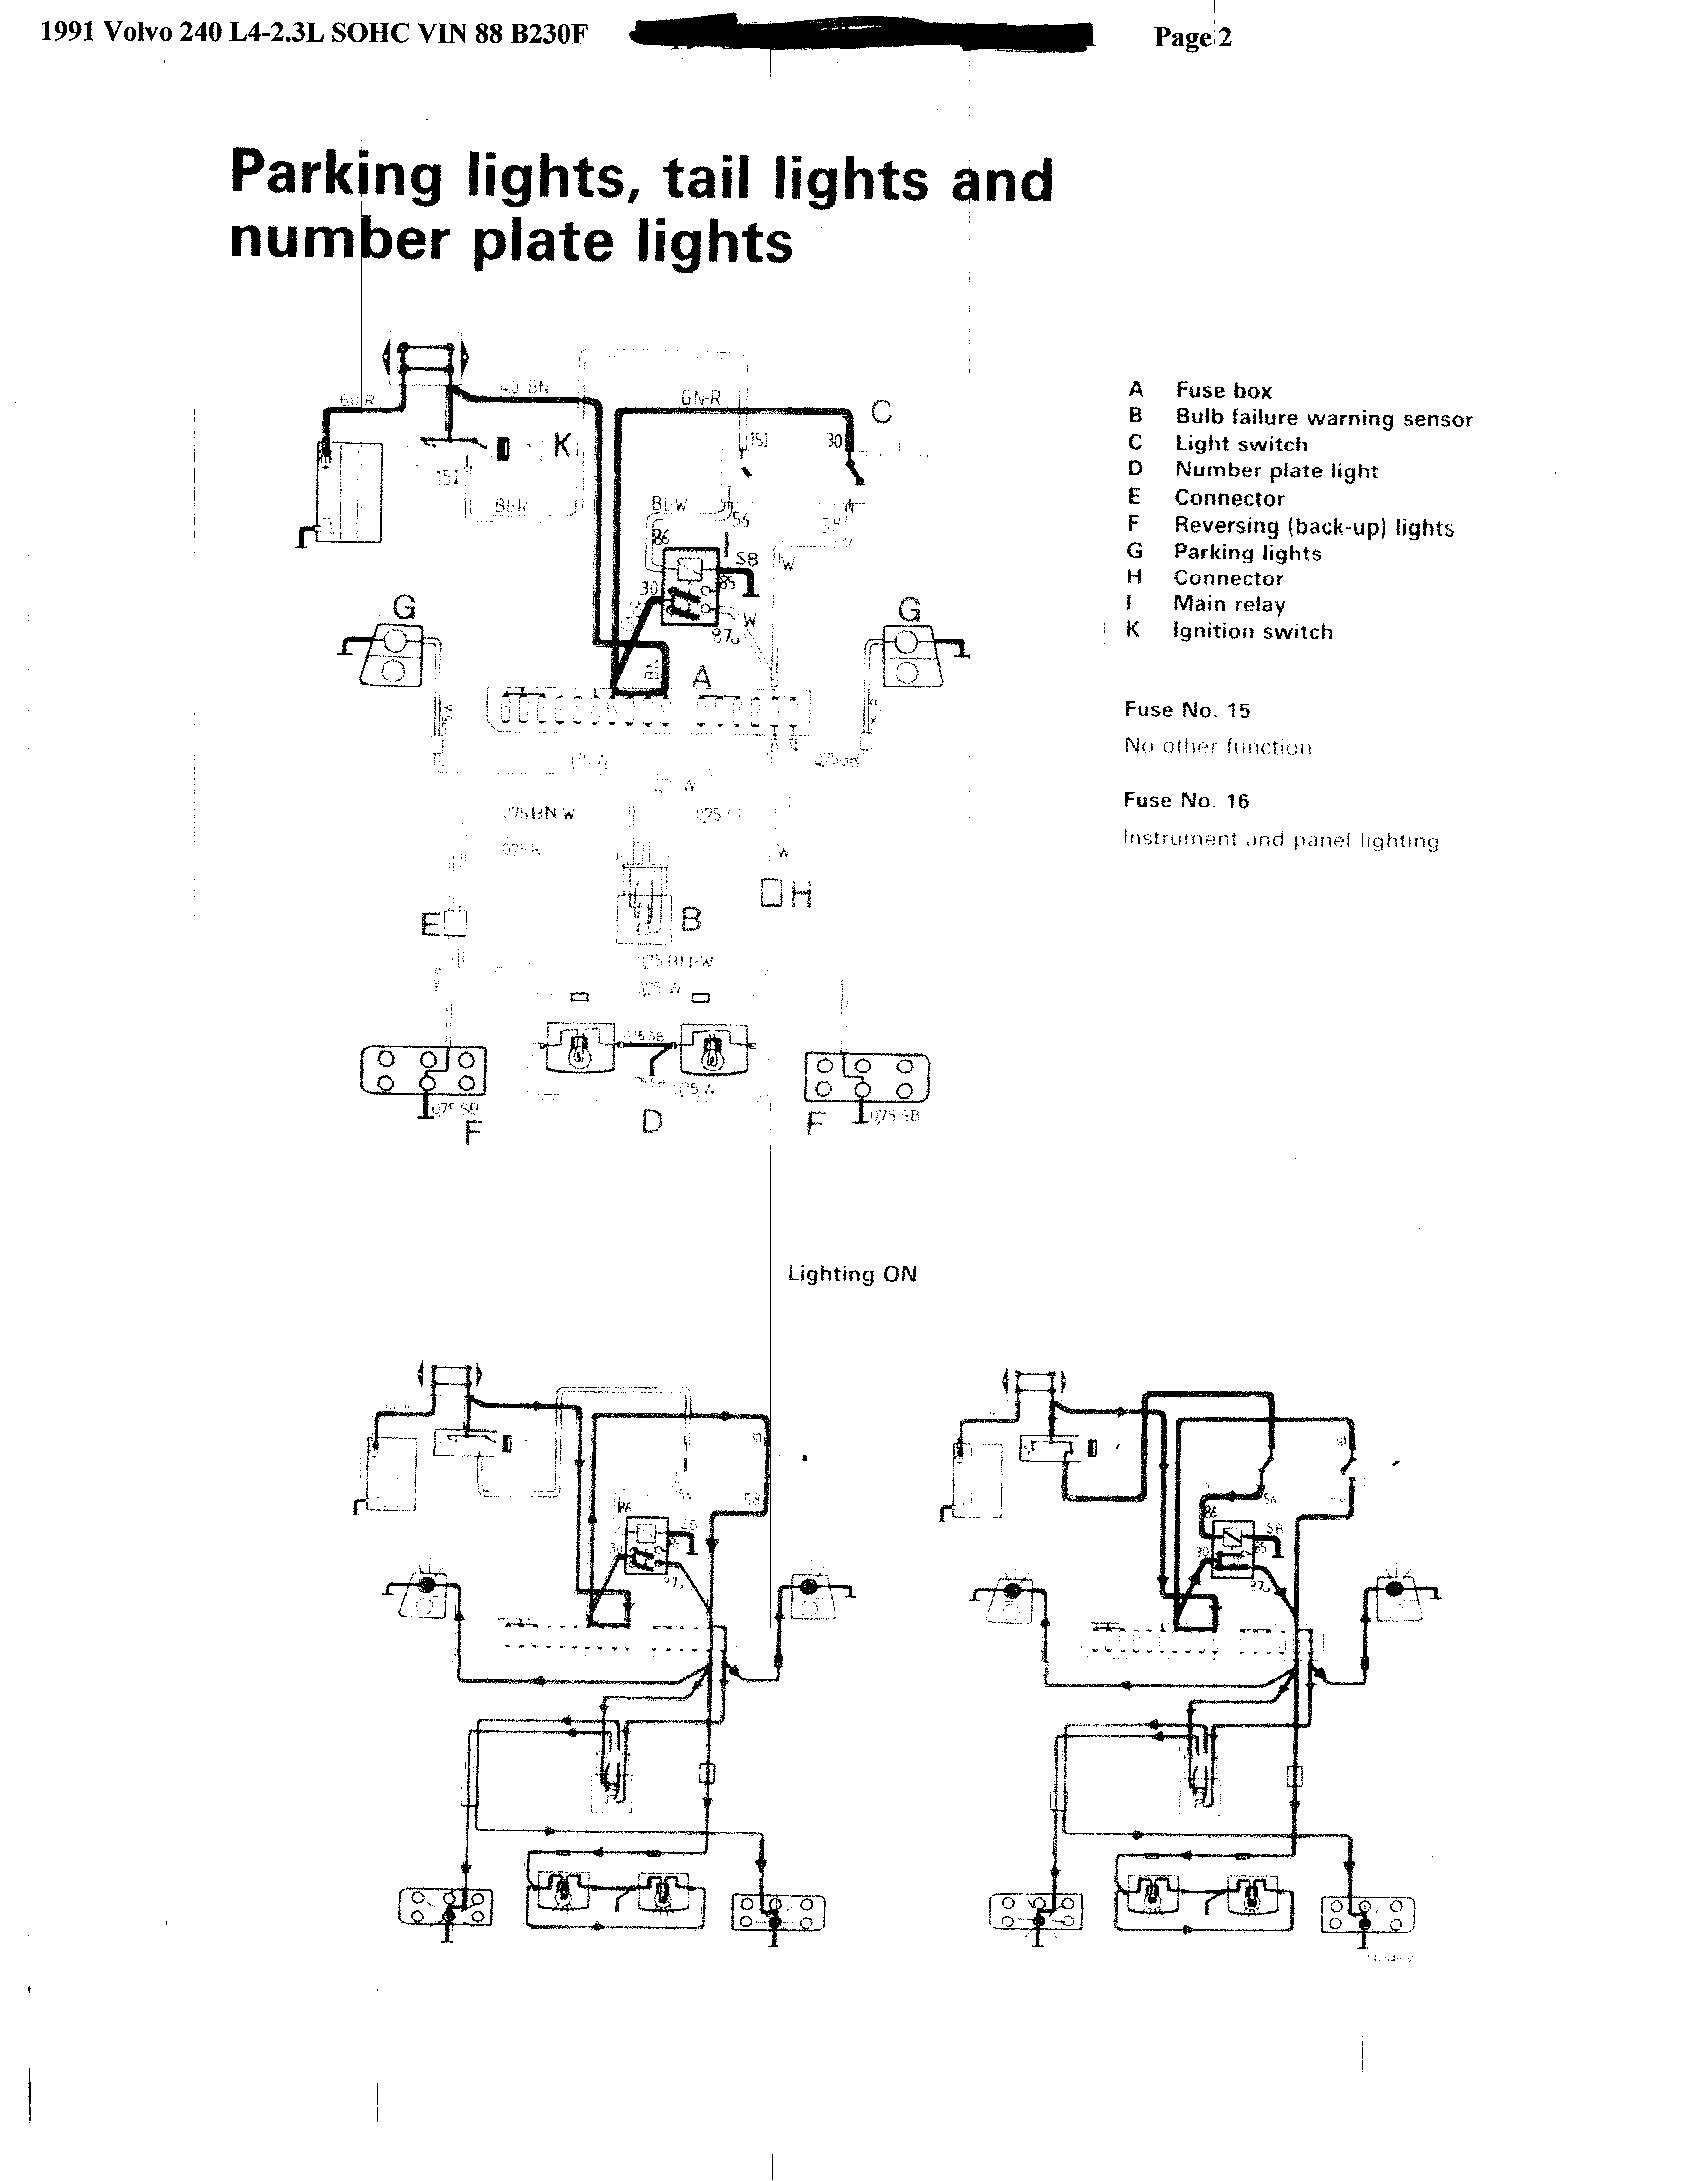 05d62d Volvo 850 Ignition Switch Wiring Diagram Wiring Resources